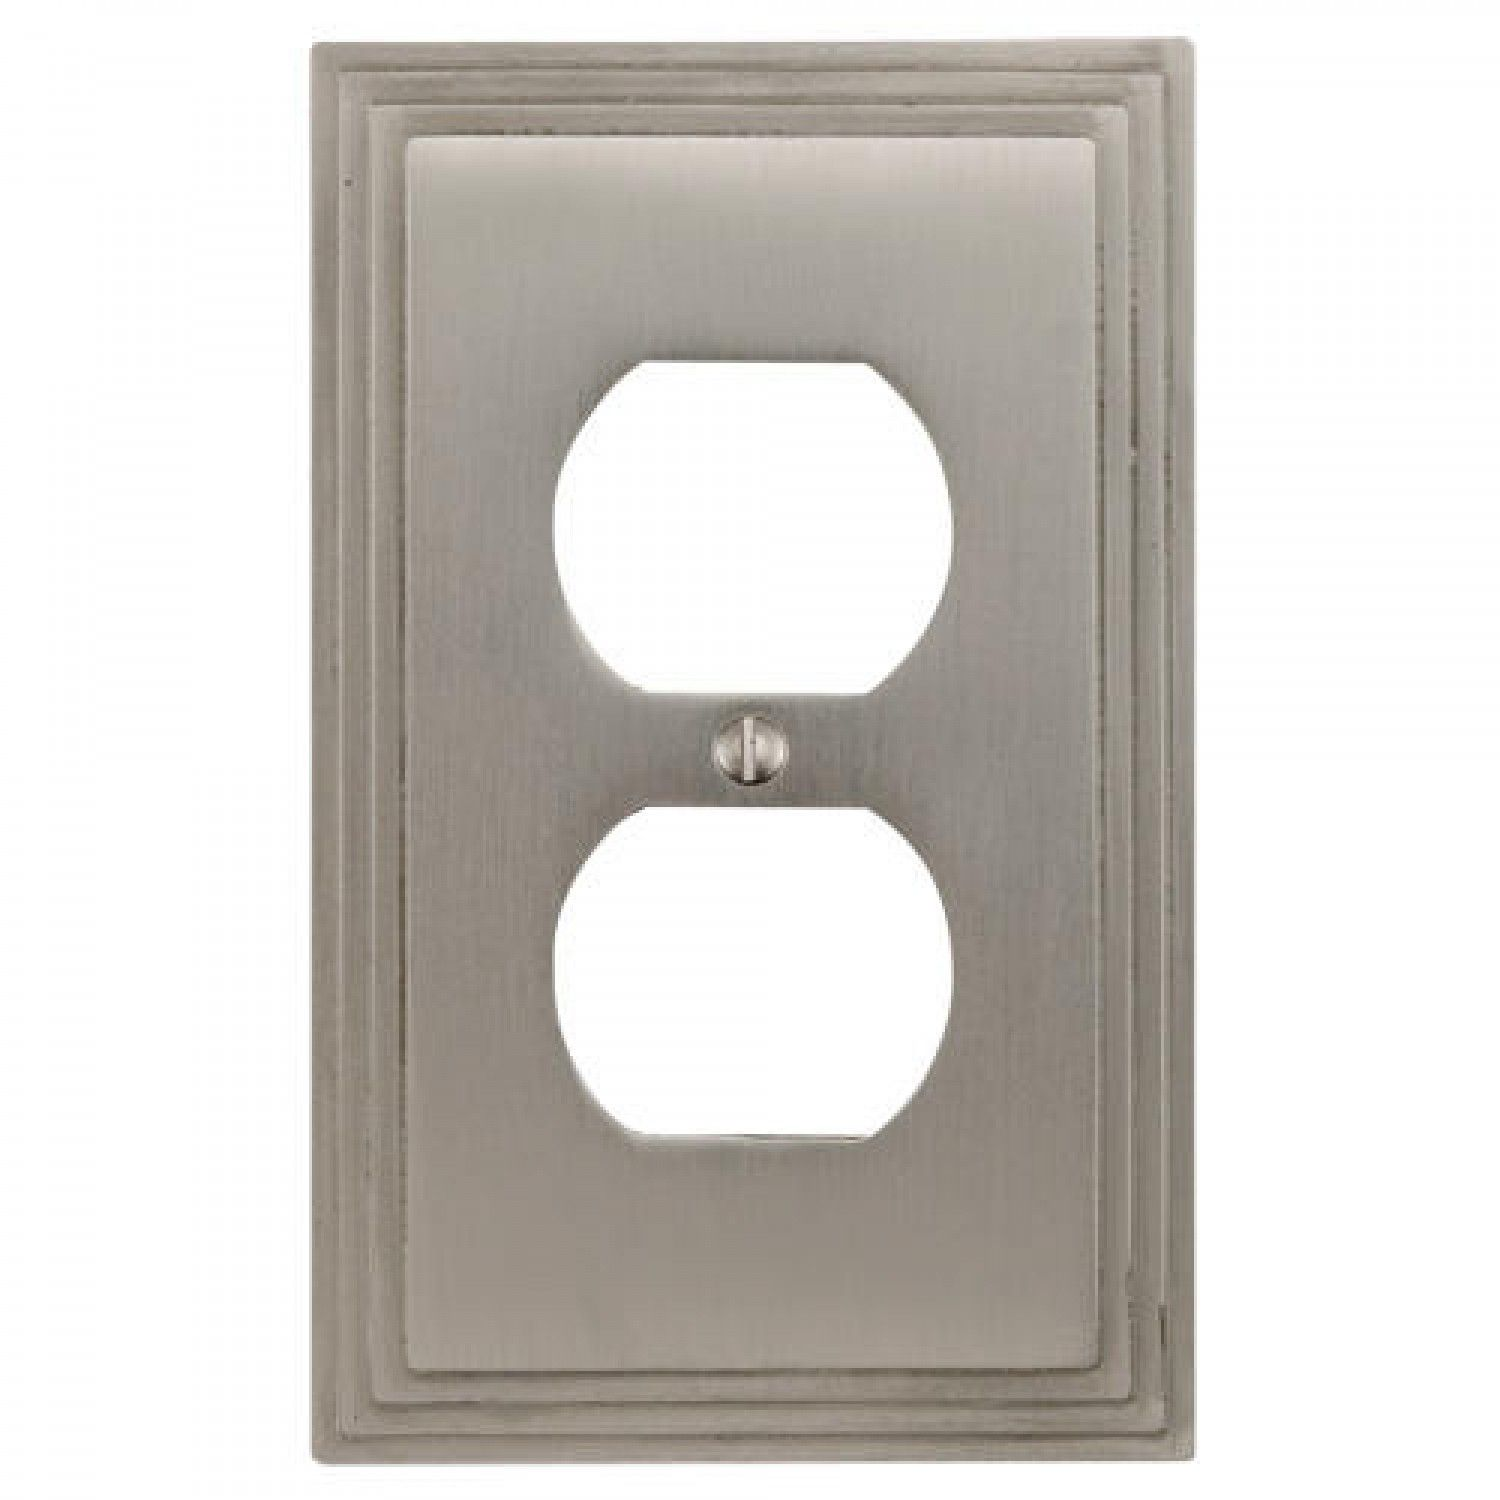 Decorative Electrical Box Cover Deco Design Solid Brass Duplex Outlet Cover  Solid Brass Outlets